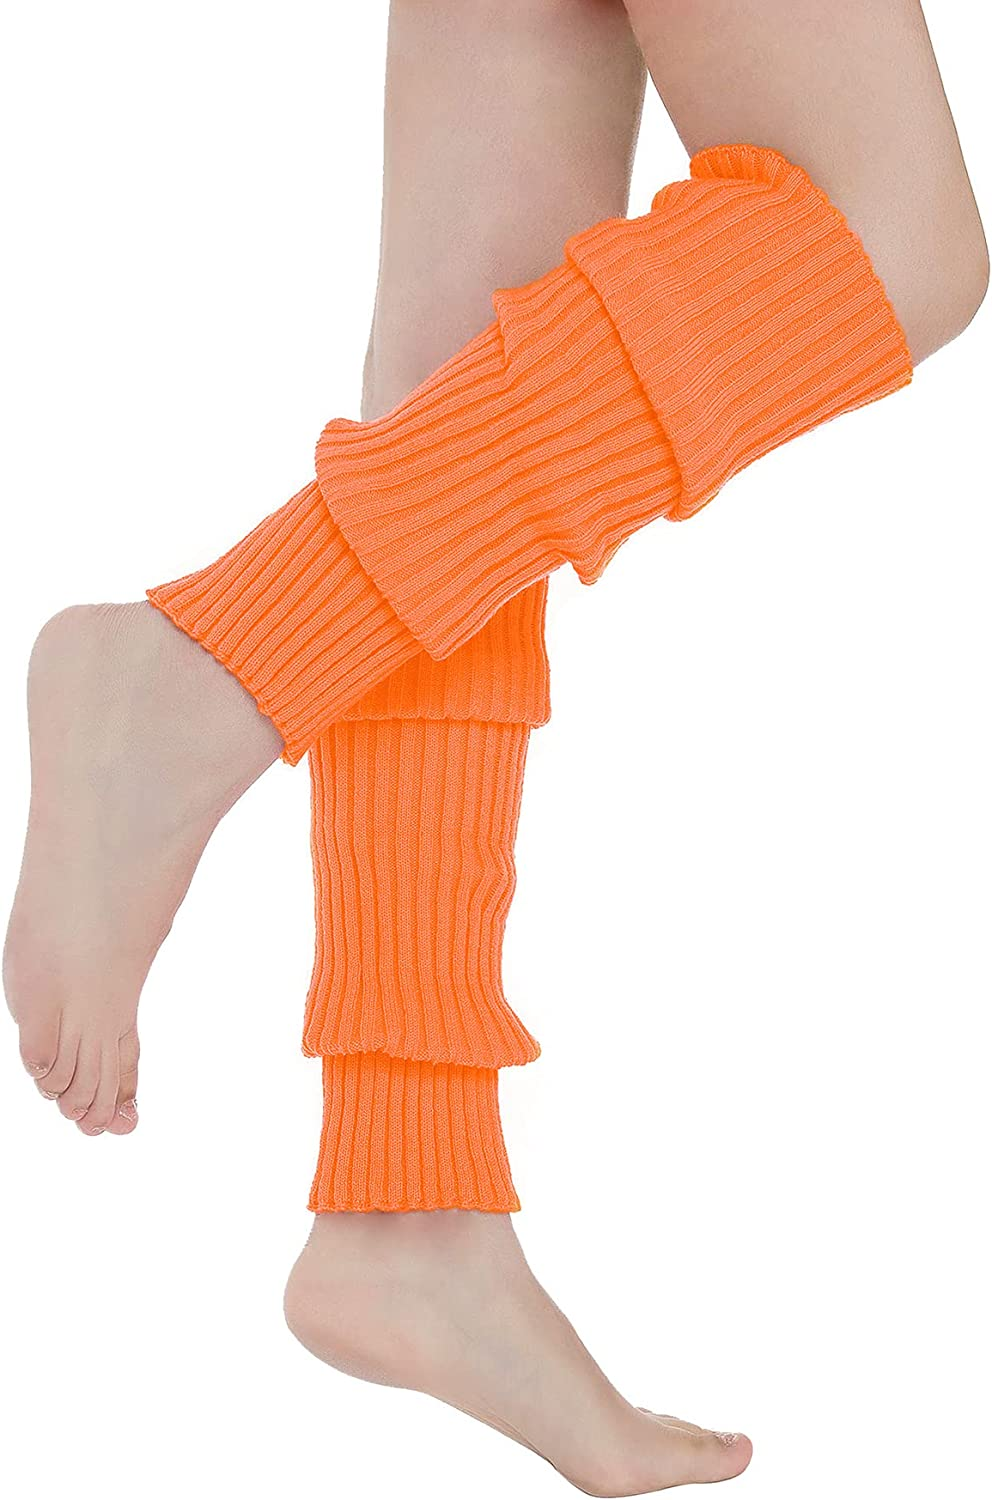 Leg Warmers for Women 80s Leg Warmers Ribbed Knit Leg Warmers 80s Accessories for Women Leg Warmer for Party Costumes